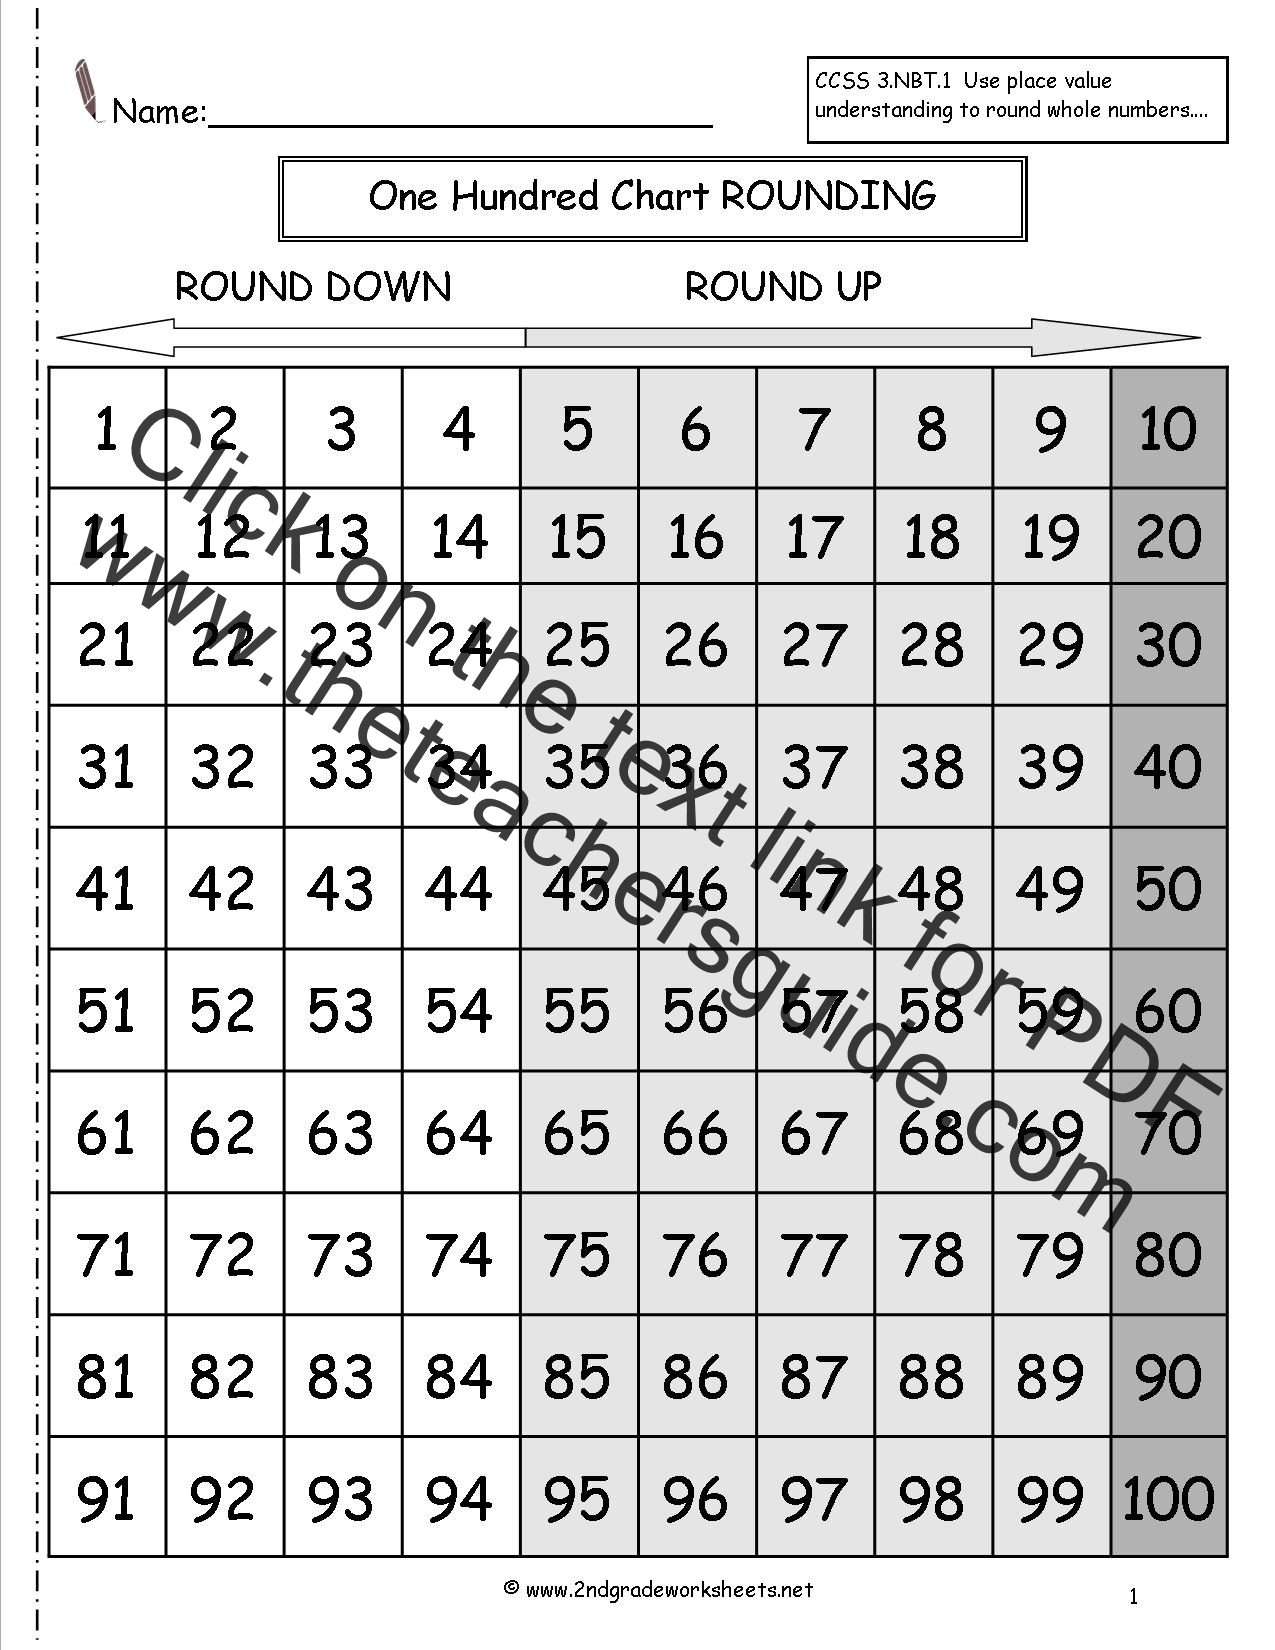 Worksheet Rounding Numbers Worksheets rounding whole numbers worksheets one hundred chart worksheet